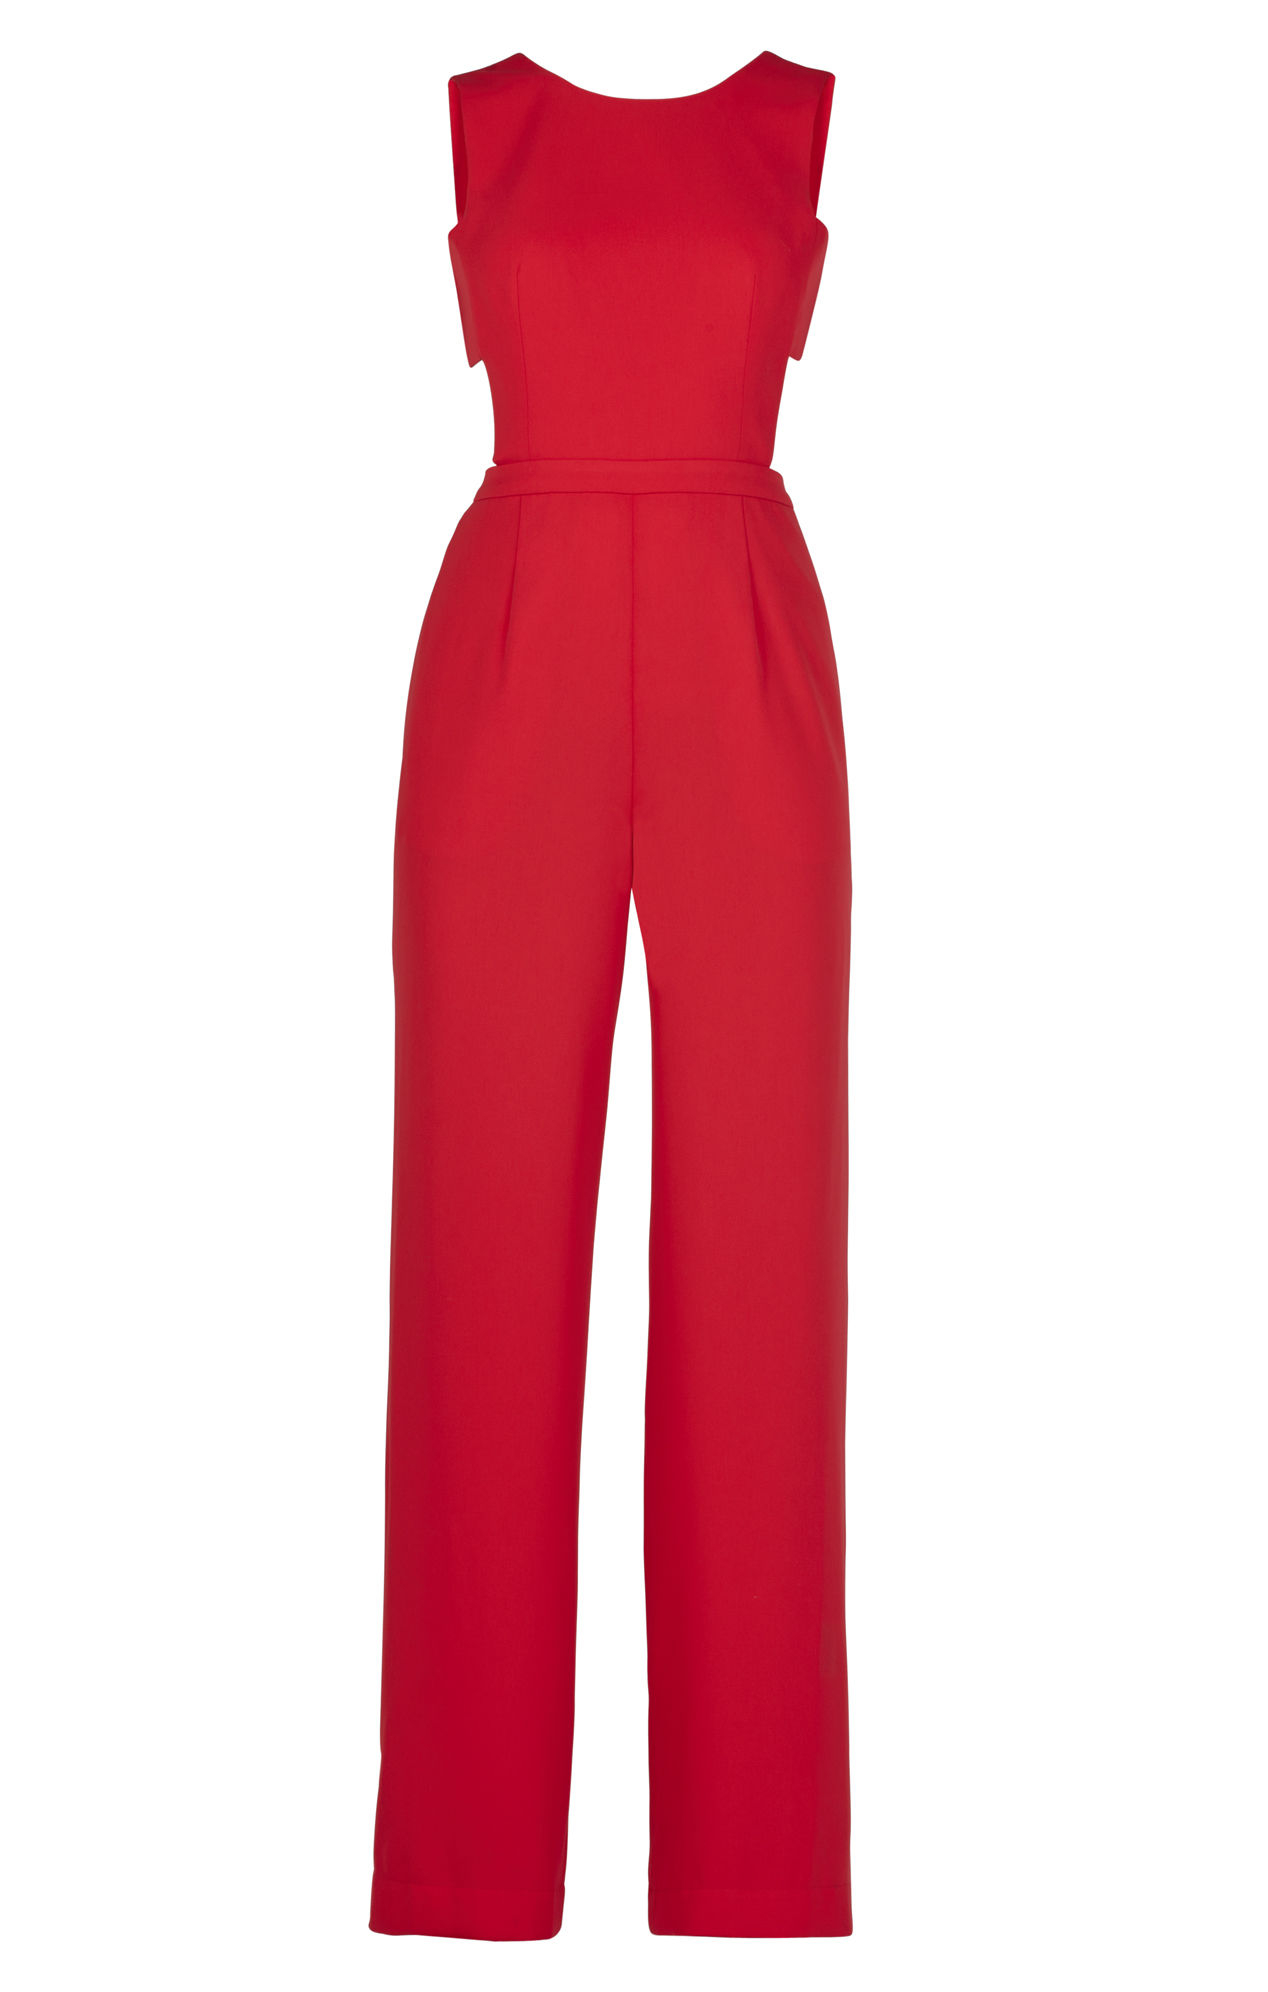 637cb4434bf Gallery. Previously sold at  BCBGMAXAZRIA · Women s Mesh Jumpsuits ...